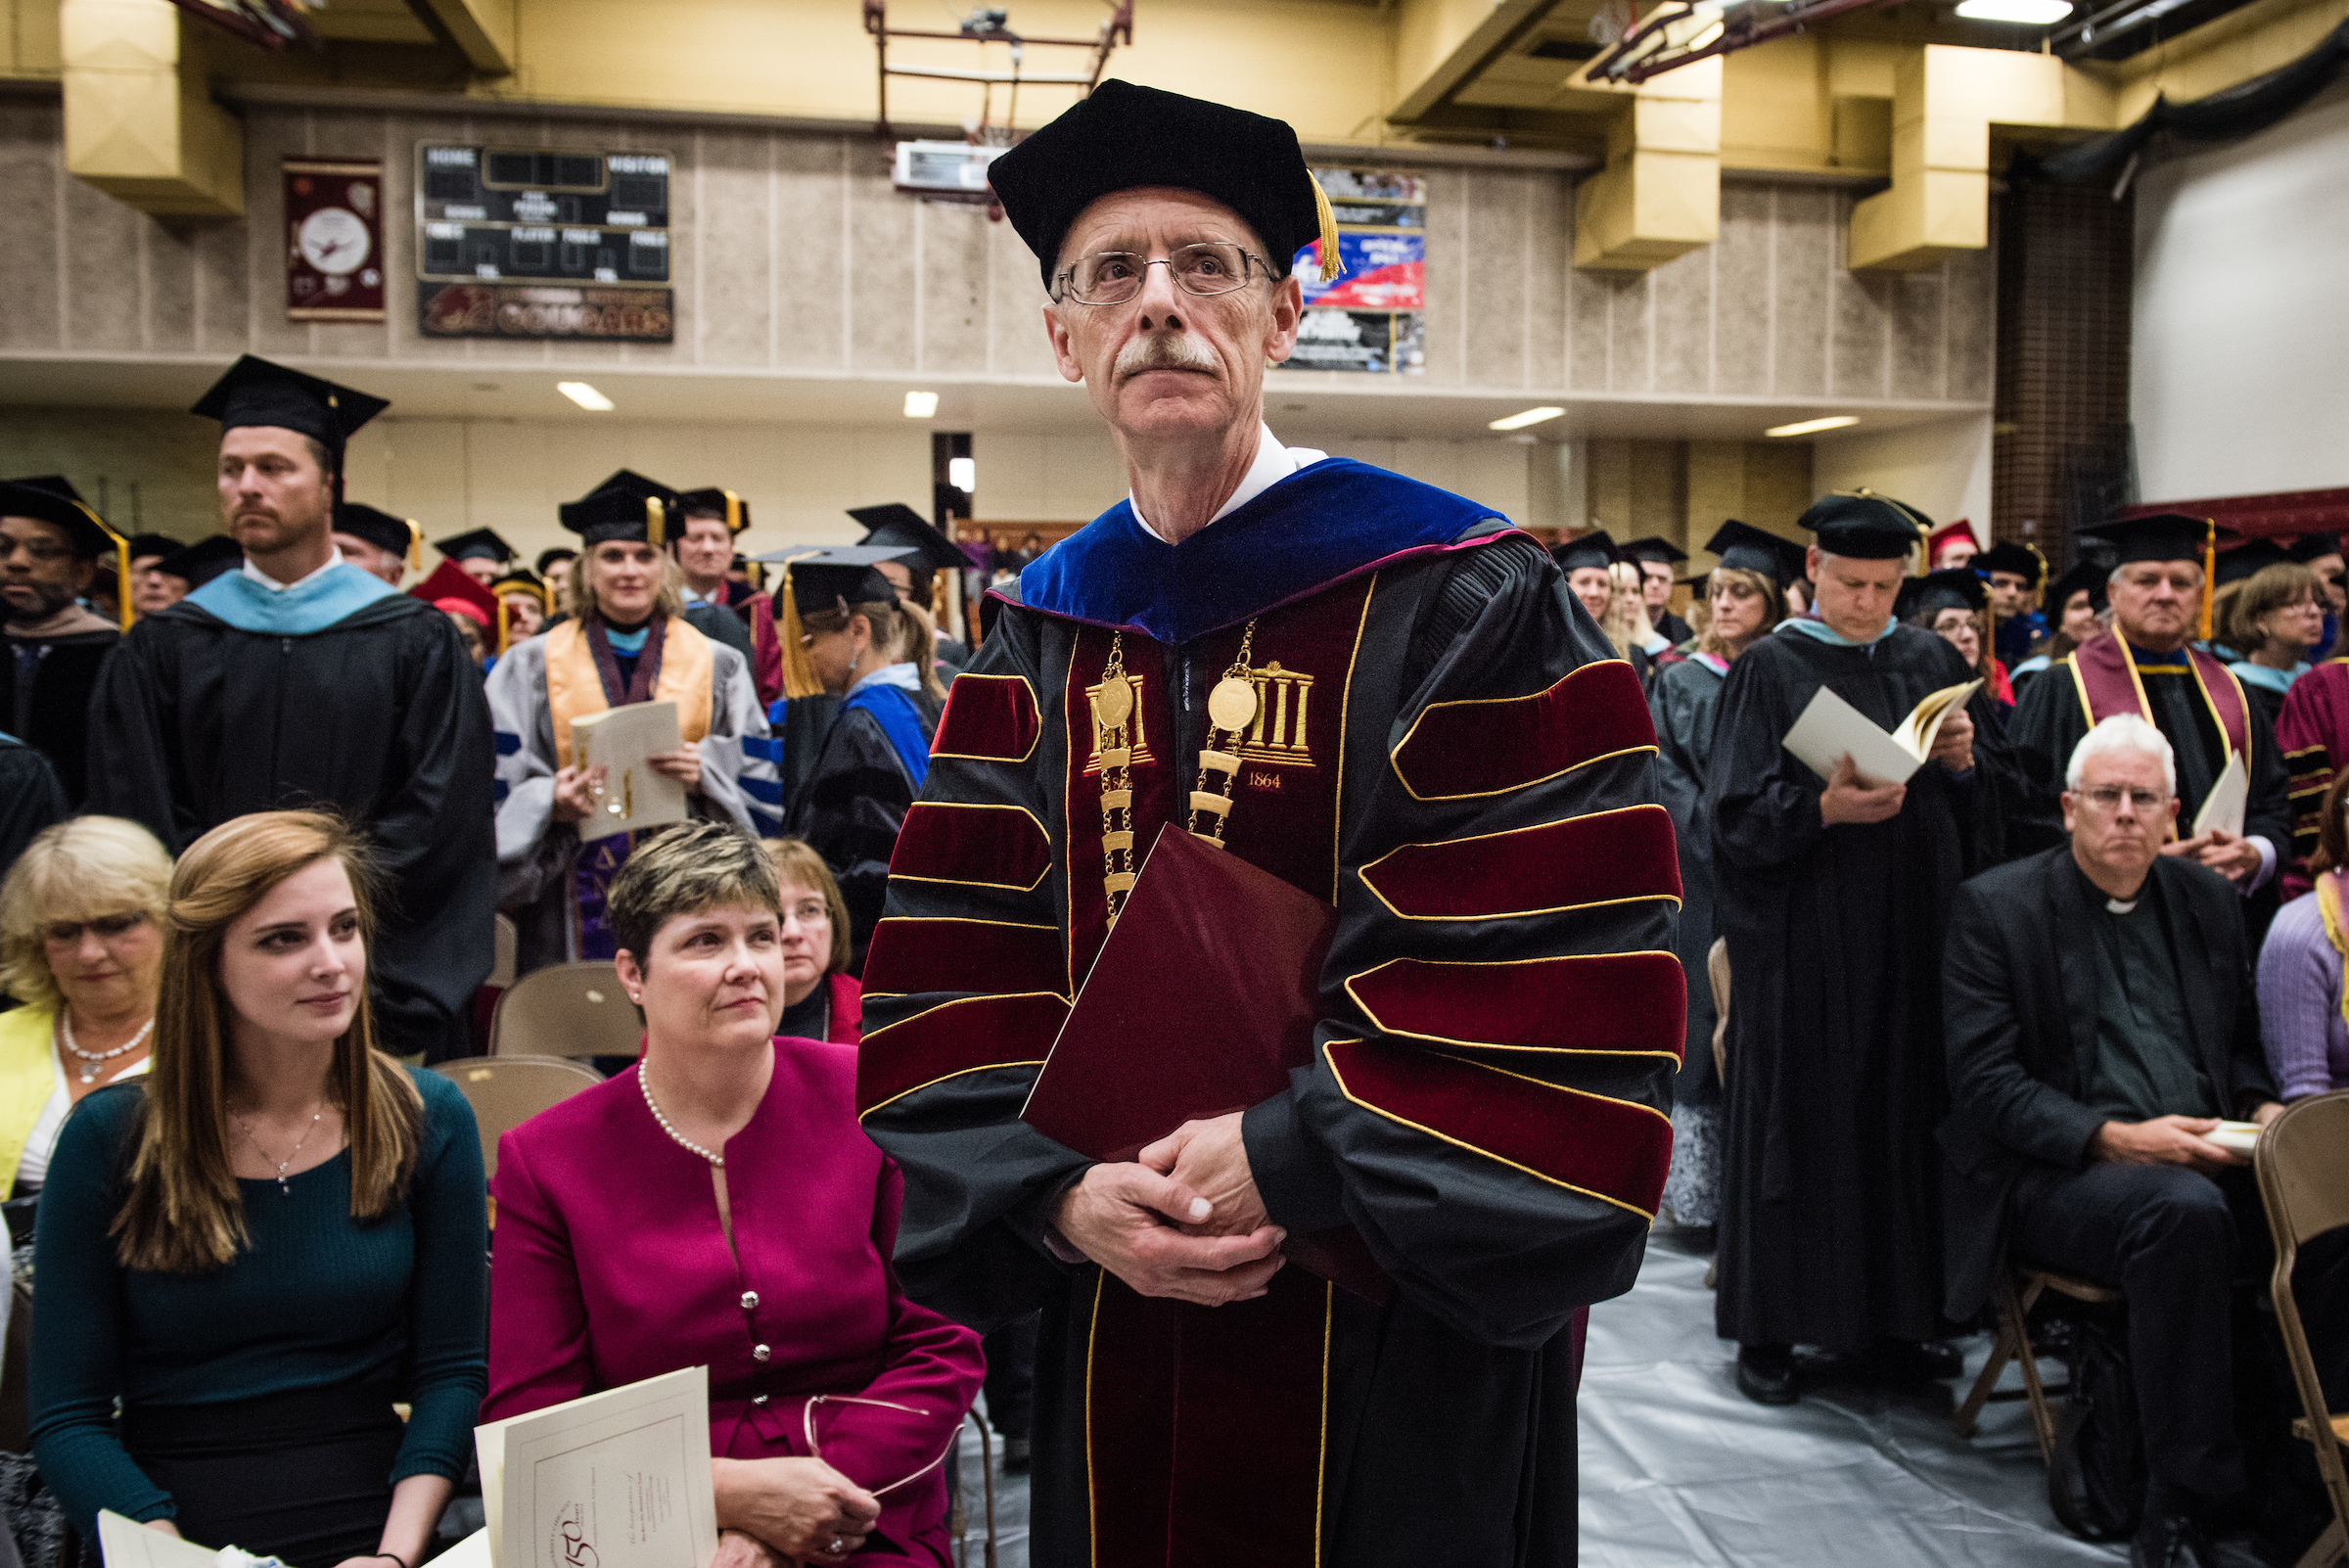 The Rev. Dr. Daniel Lee Gard, president of Concordia University Chicago, walks in a procession at the beginning of his inauguration at the college in River Forest, Ill., on Friday, Oct. 10, 2014. LCMS Communications/Erik M. Lunsford